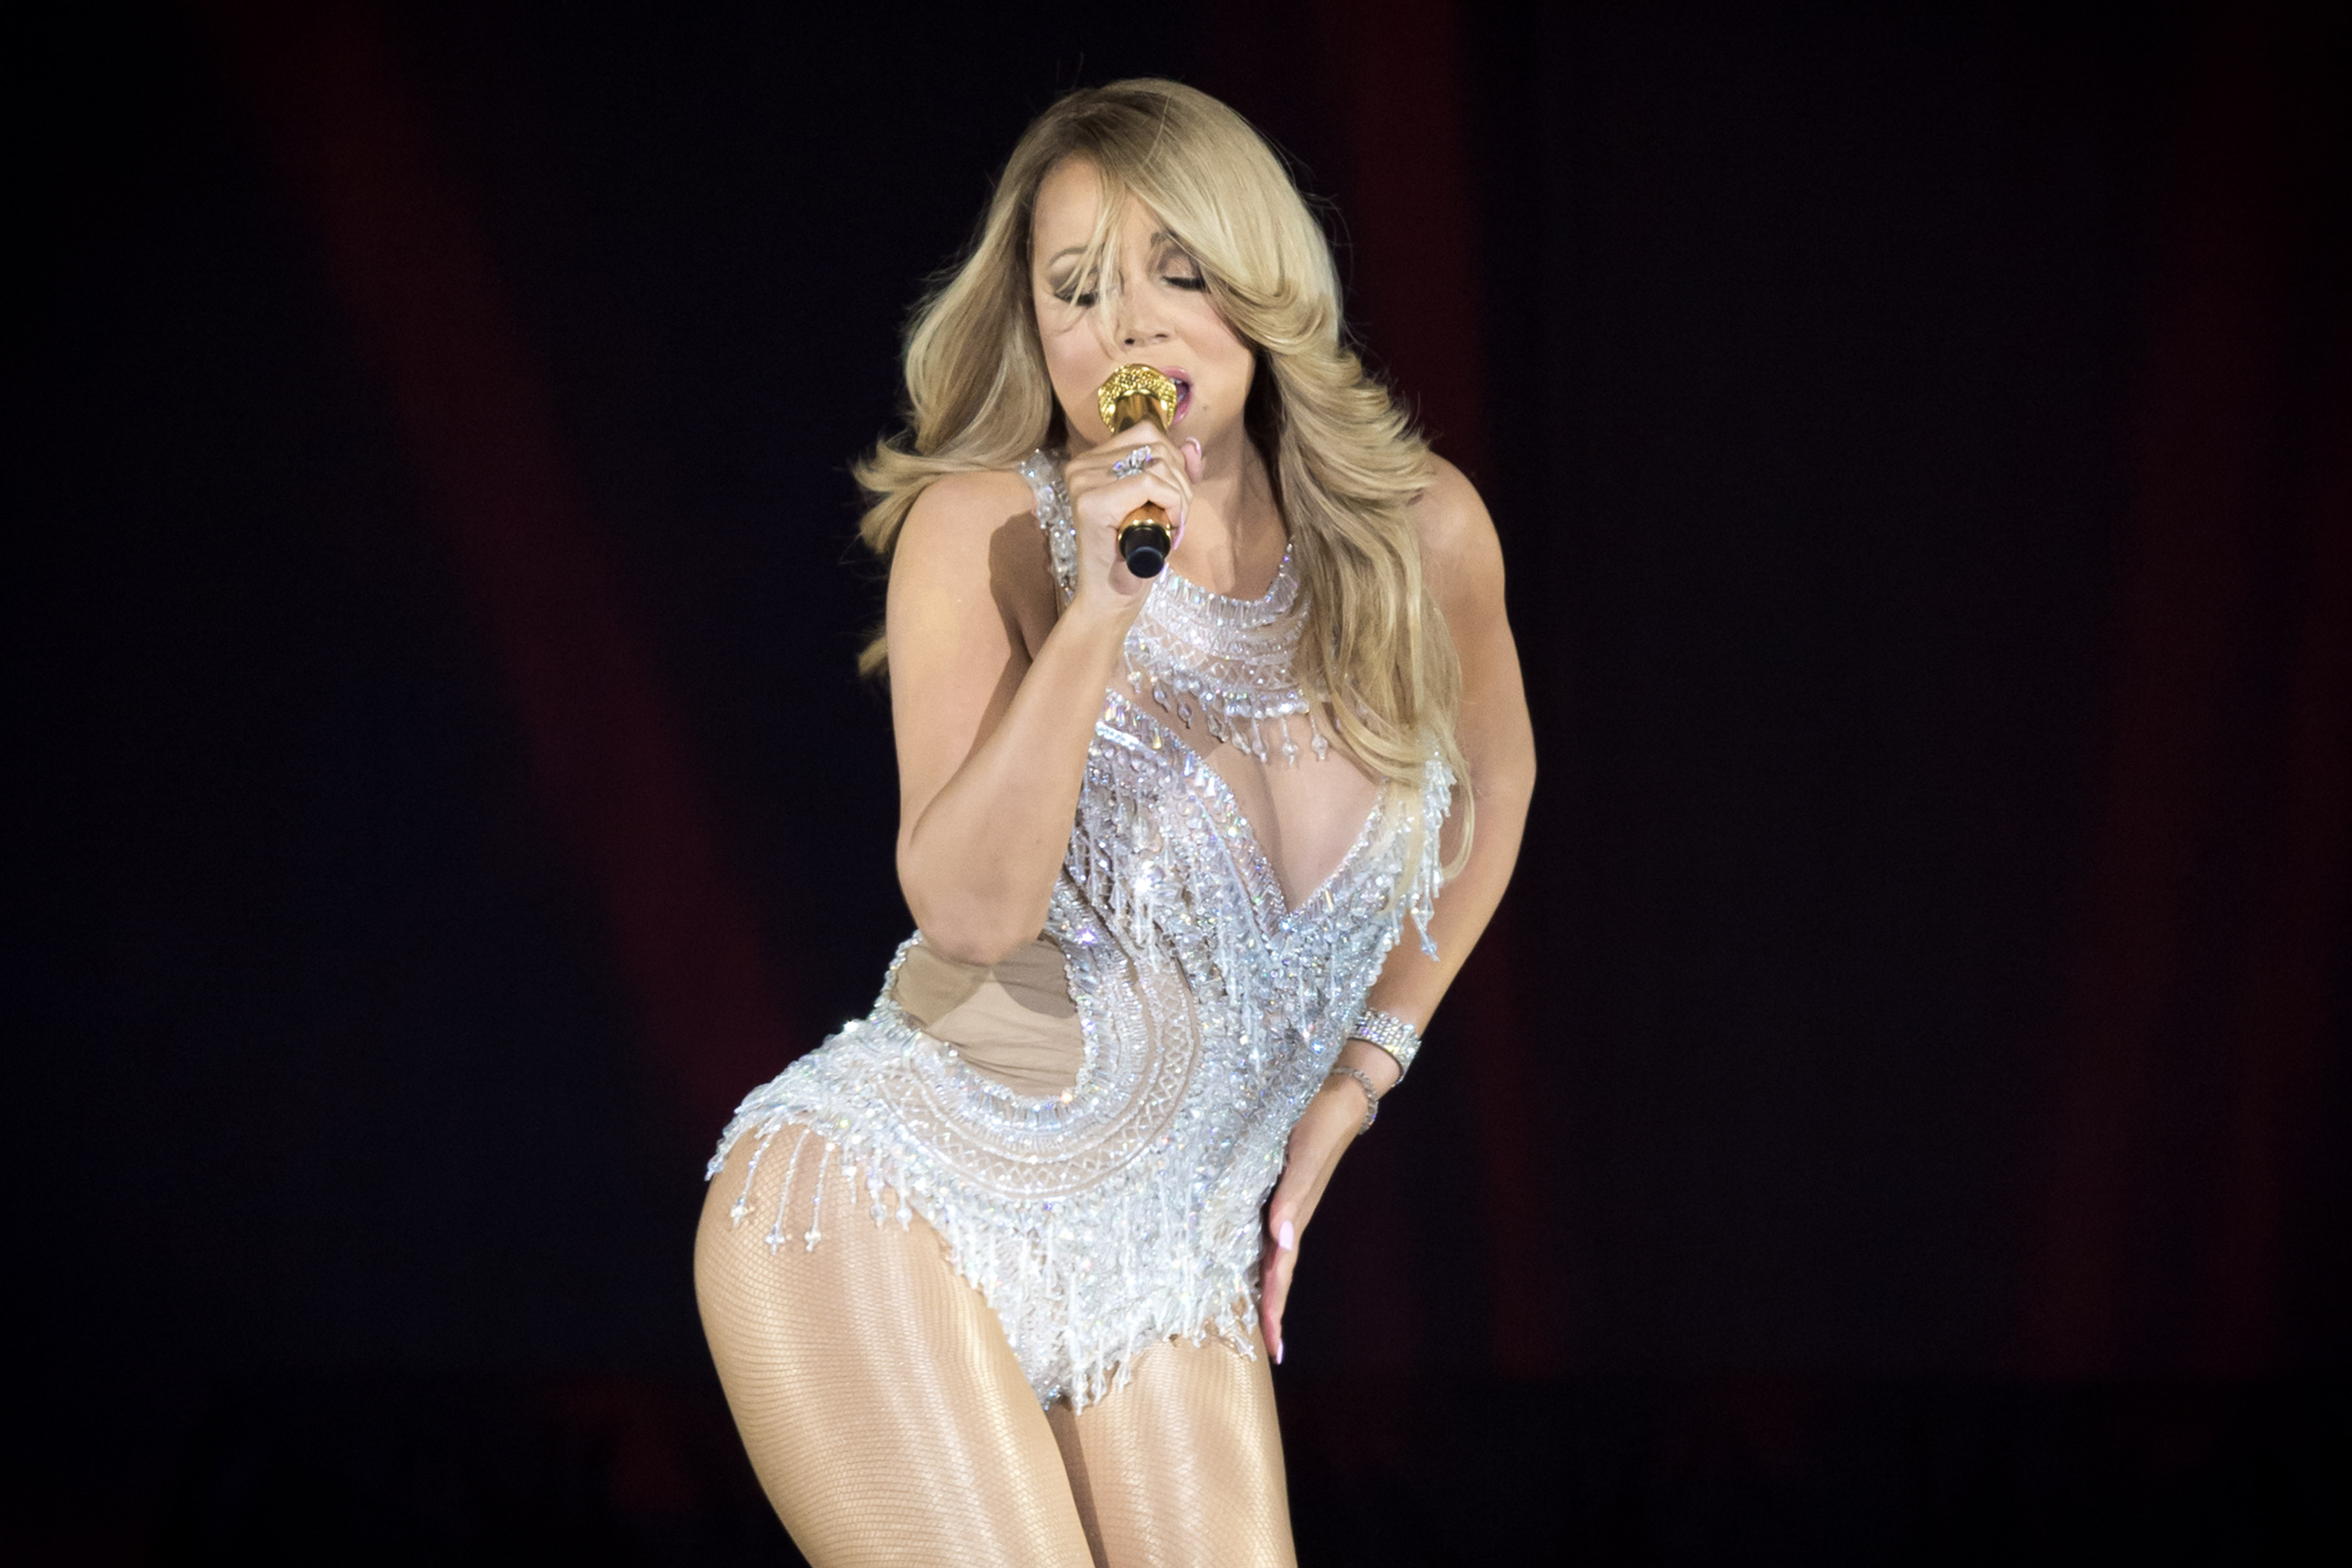 Mariah Carey does very Mariah Carey thing, 'insures parts of her body for $70 million'